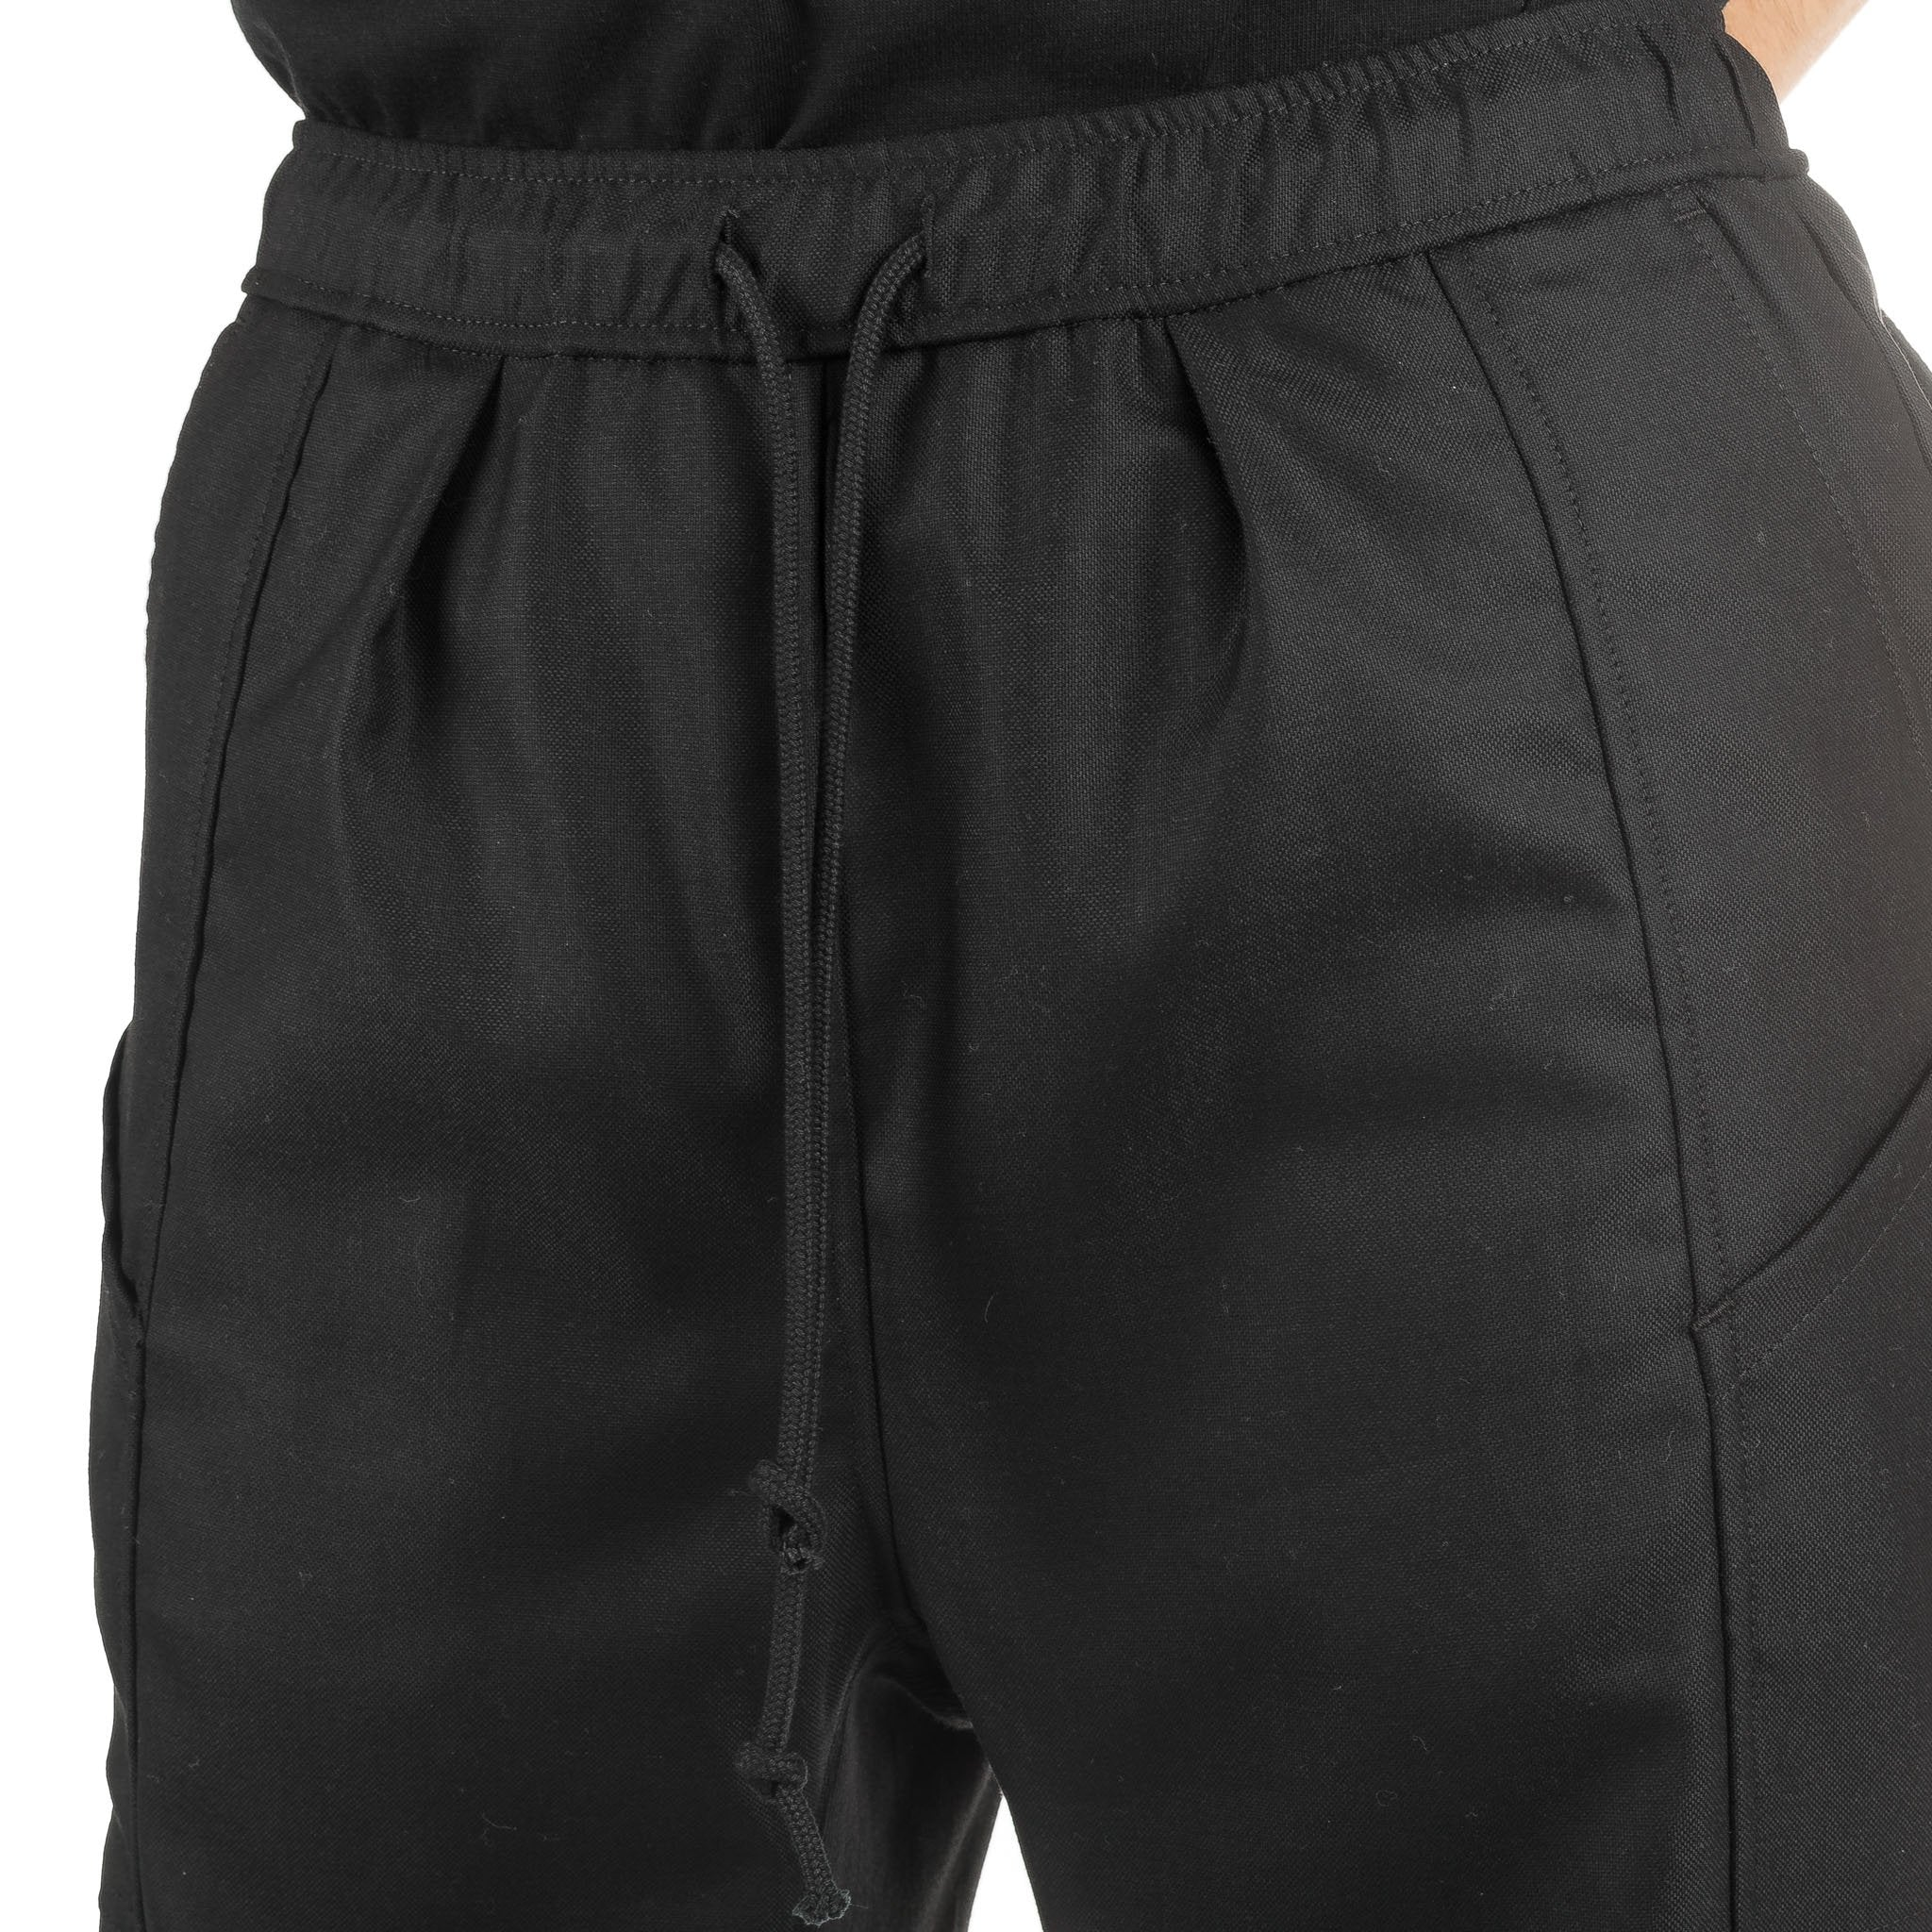 Arc Taos Pant TPS11001 Black Wool